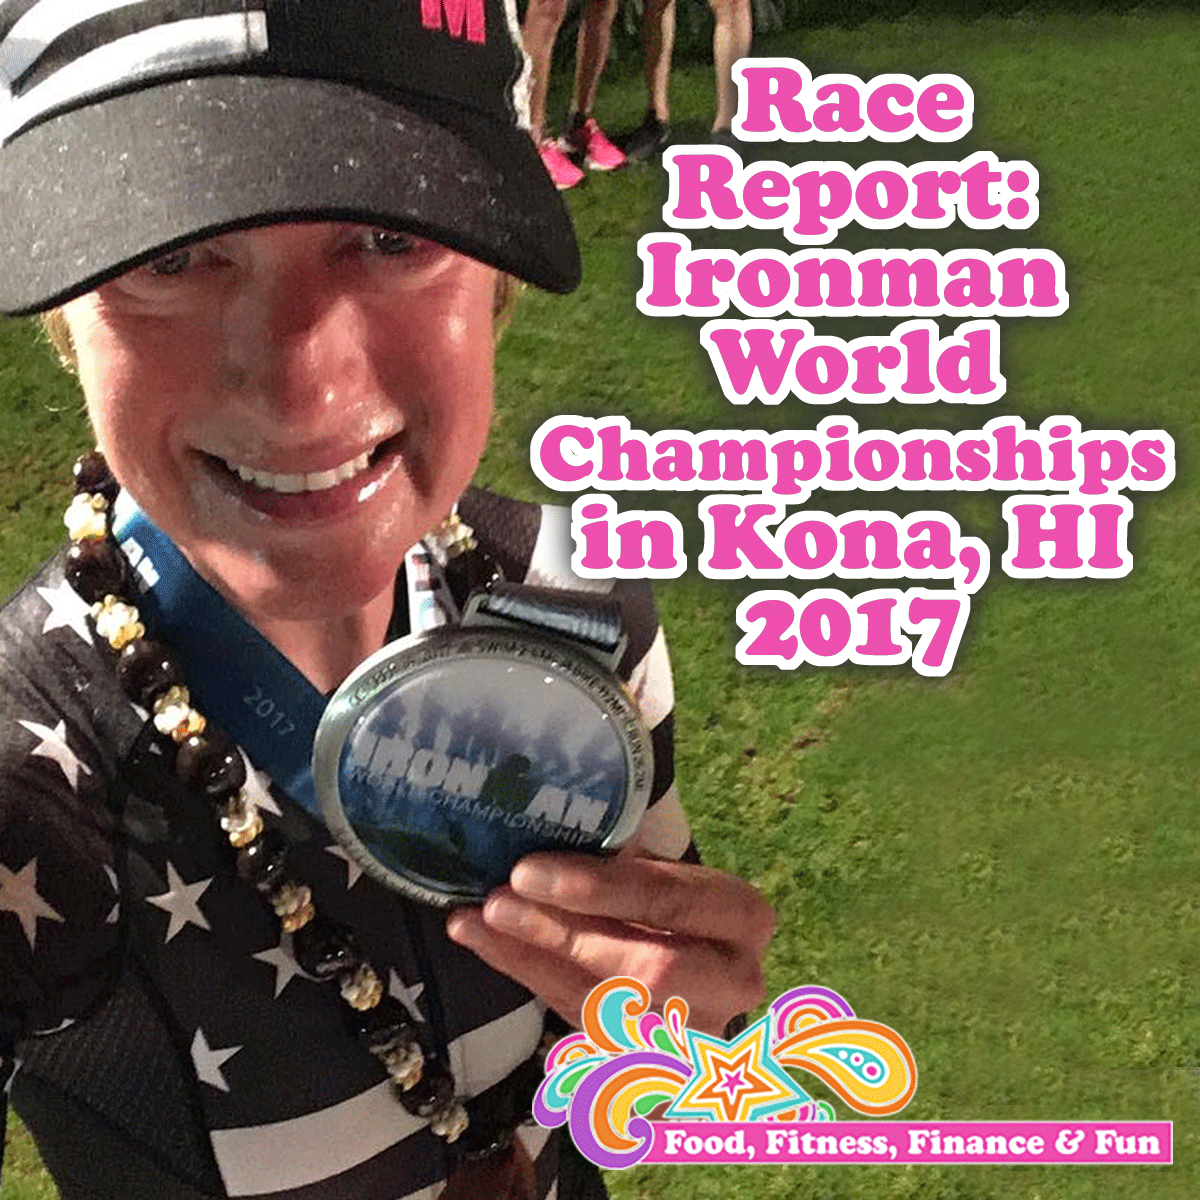 Race Report: Ironman World Championships in Kona, HI 2017